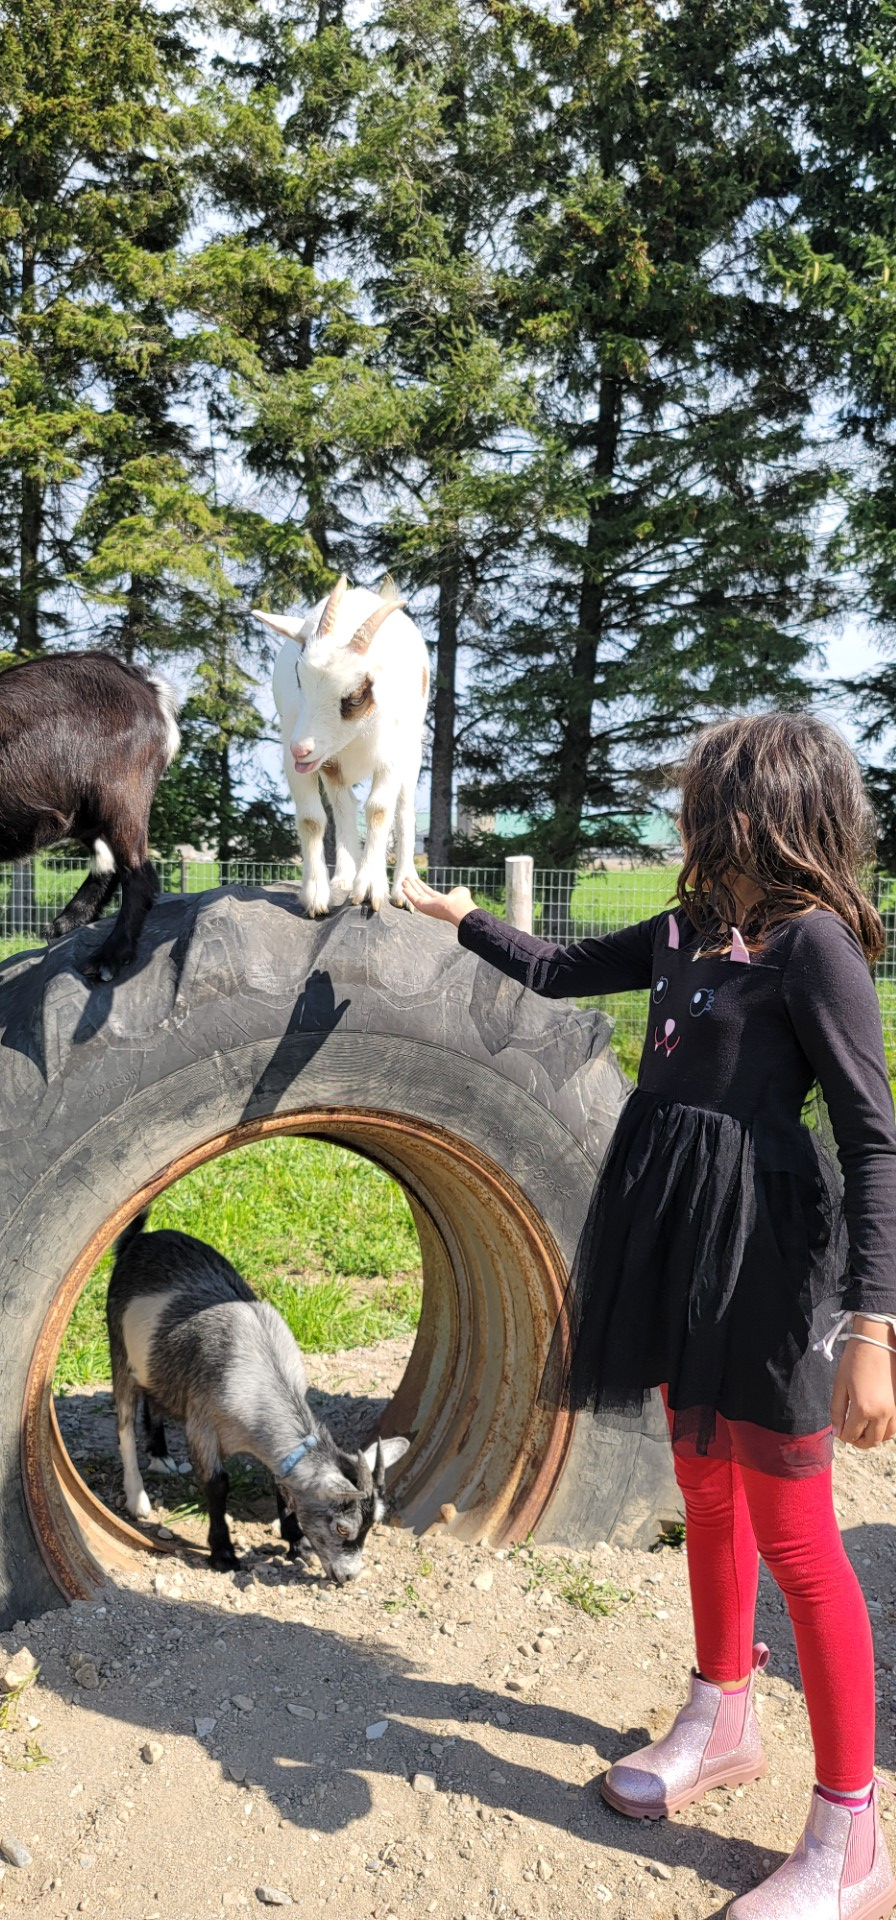 child extending hand to goat